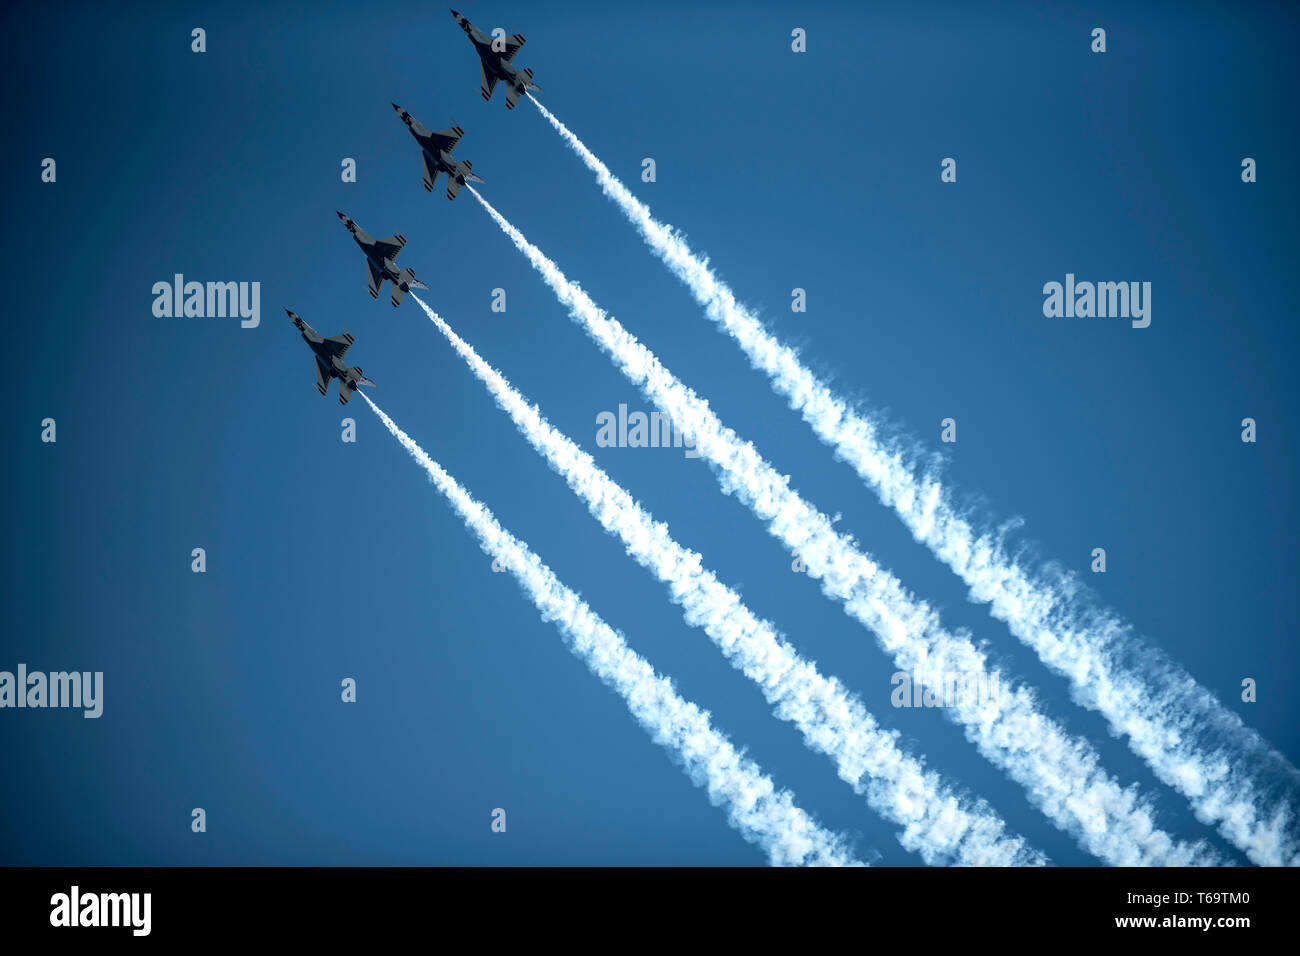 U.S. Air Force Thunderbirds perform a four-ship flyover during the Wings Over Wayne Air Show, April 27, 2019, at Seymour Johnson Air Force Base, North Carolina. The Thunderbirds demonstrated the versatility of the F-16 Fighting Falcon by performing aerial acrobatics, precision formations and high-speed passes during their performance.  (U.S. Air Force photo by Tech. Sgt. David W. Carbajal) - Stock Image